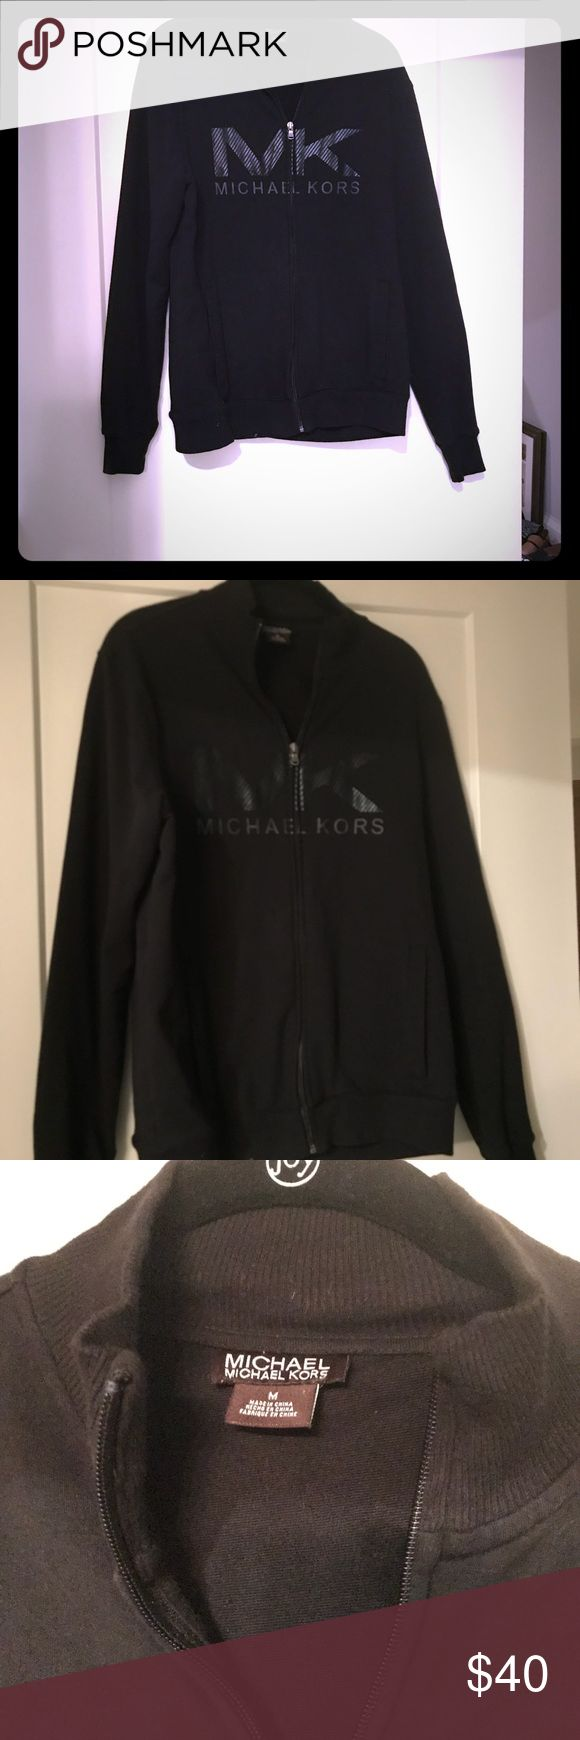 Michael Kor track jacket Michael Kors black track jacket. Size medium. Purchased at Macy's. Michael Kors Jackets & Coats Performance Jackets